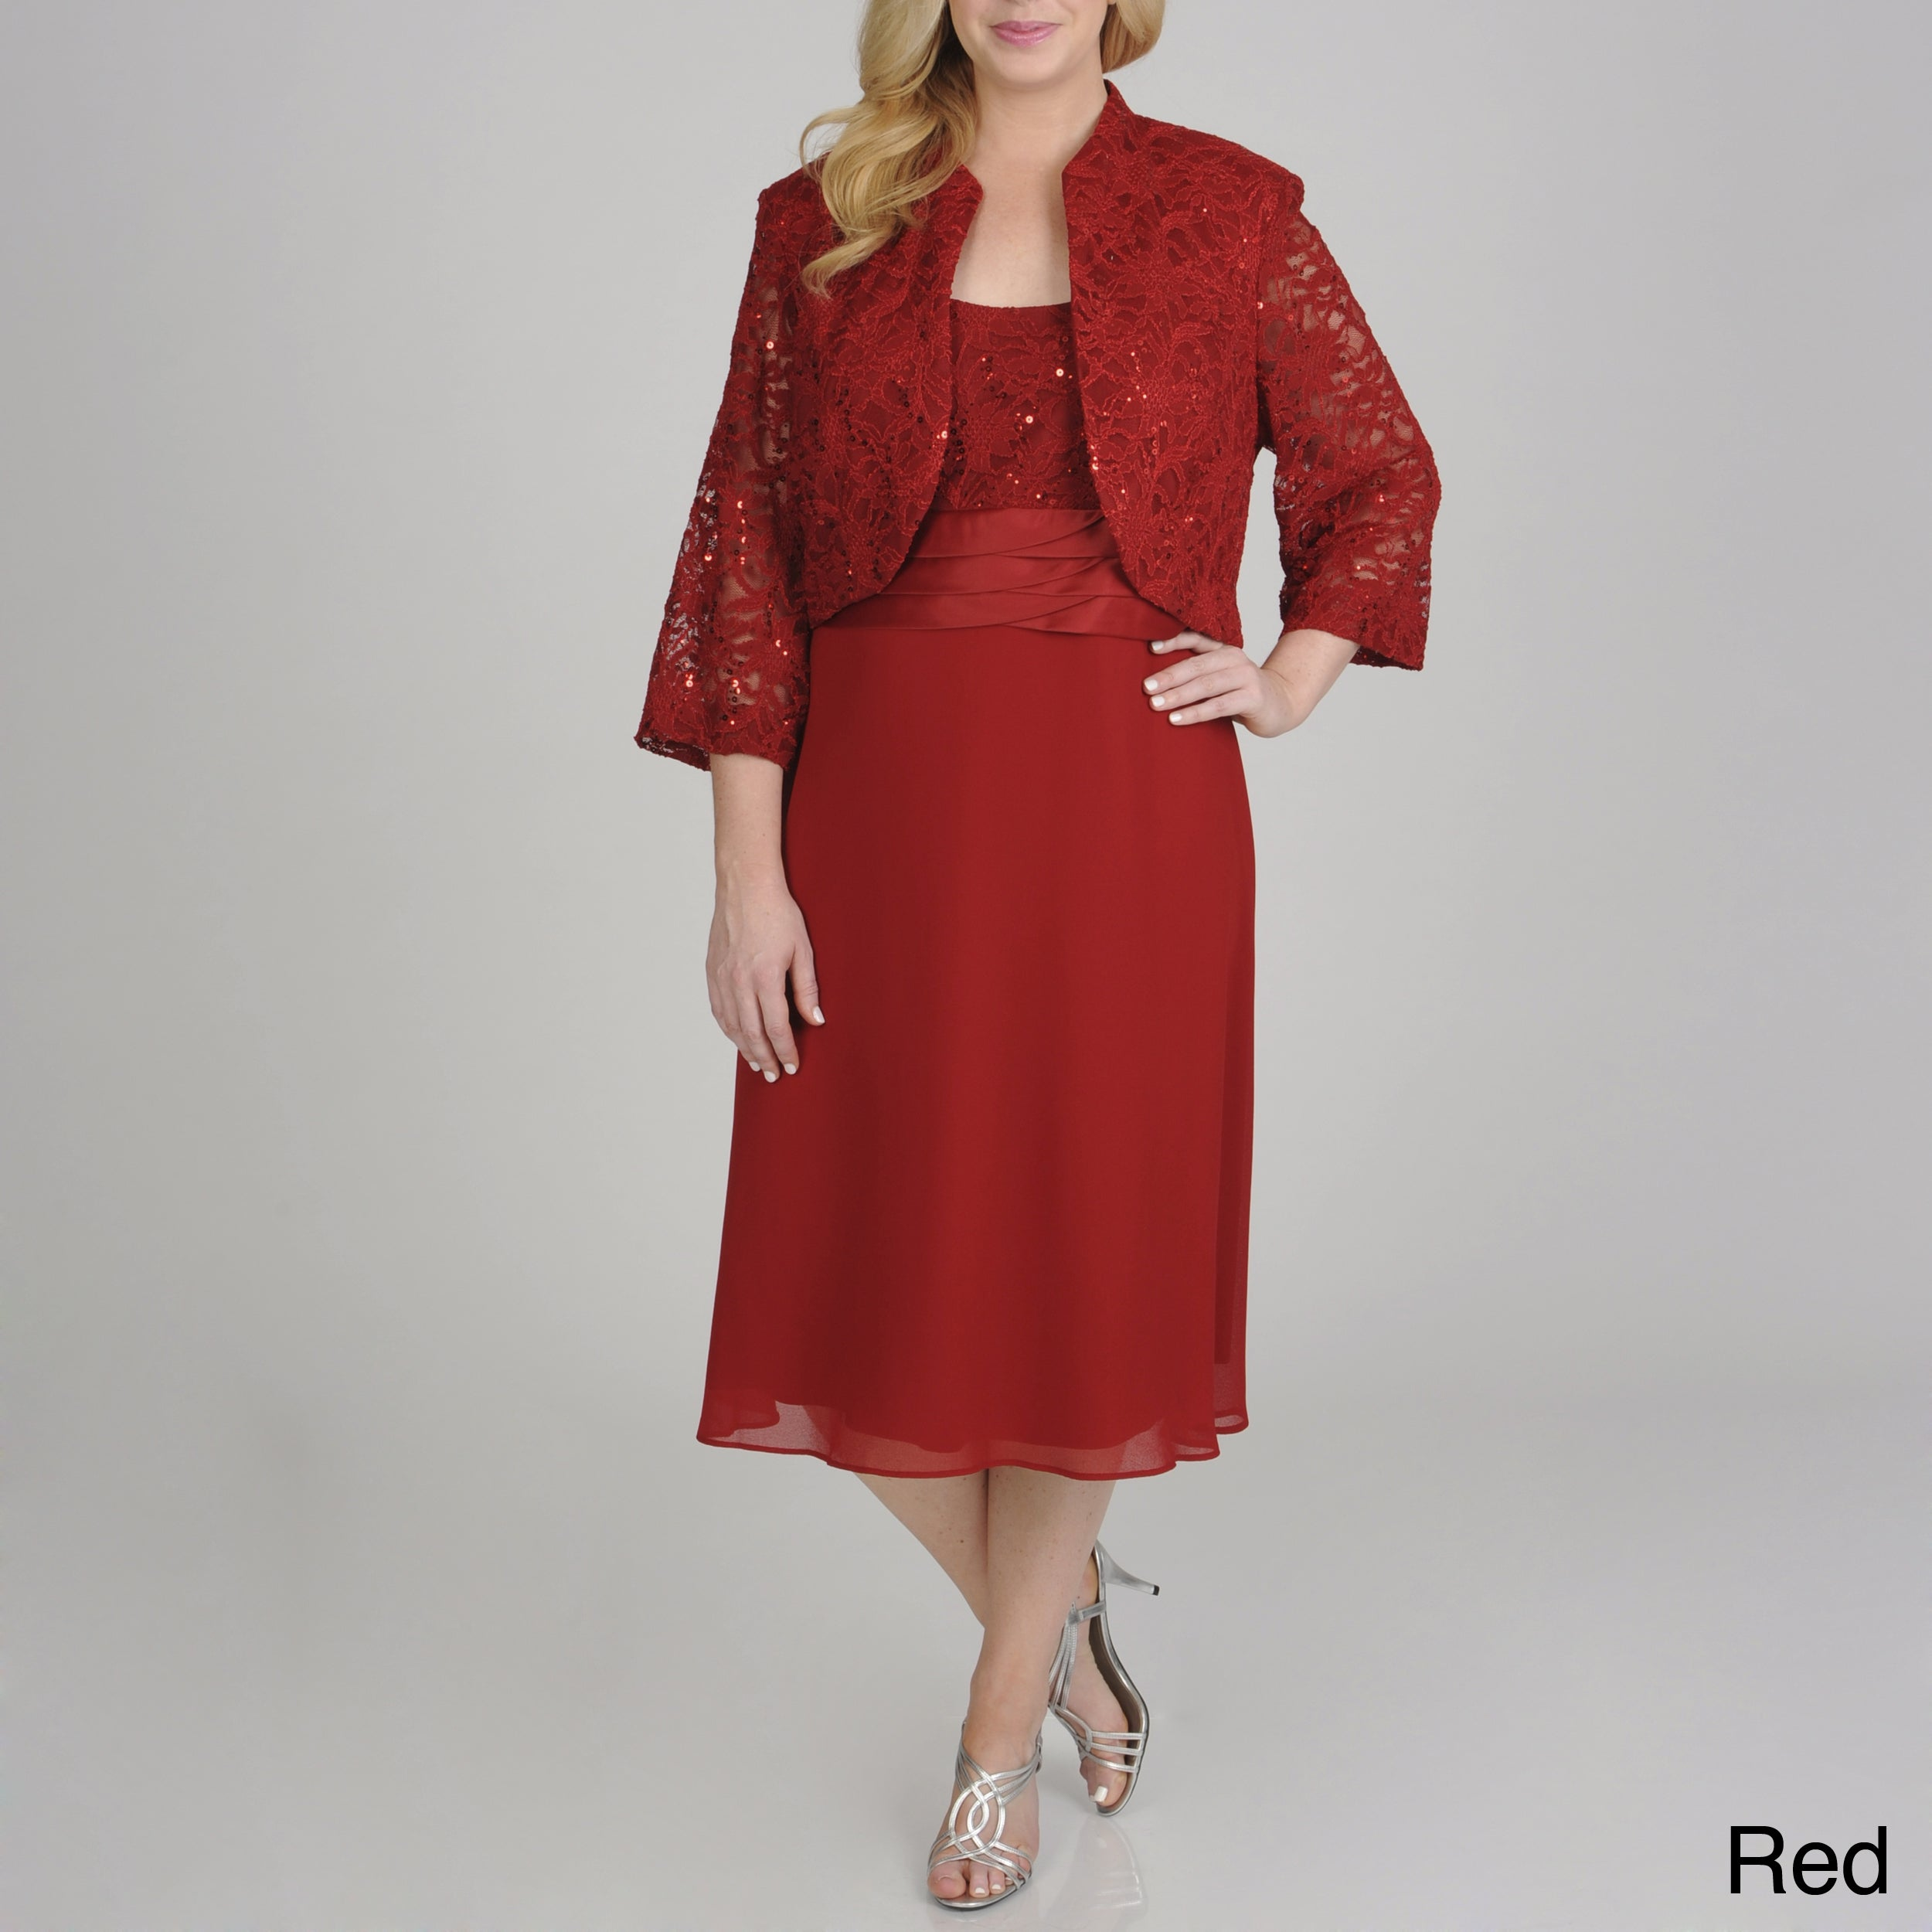 eb1b10847204f Shop R   M Richards Plus Size Sequin Lace 2-piece Jacket Dress - Free  Shipping Today - Overstock - 8110228